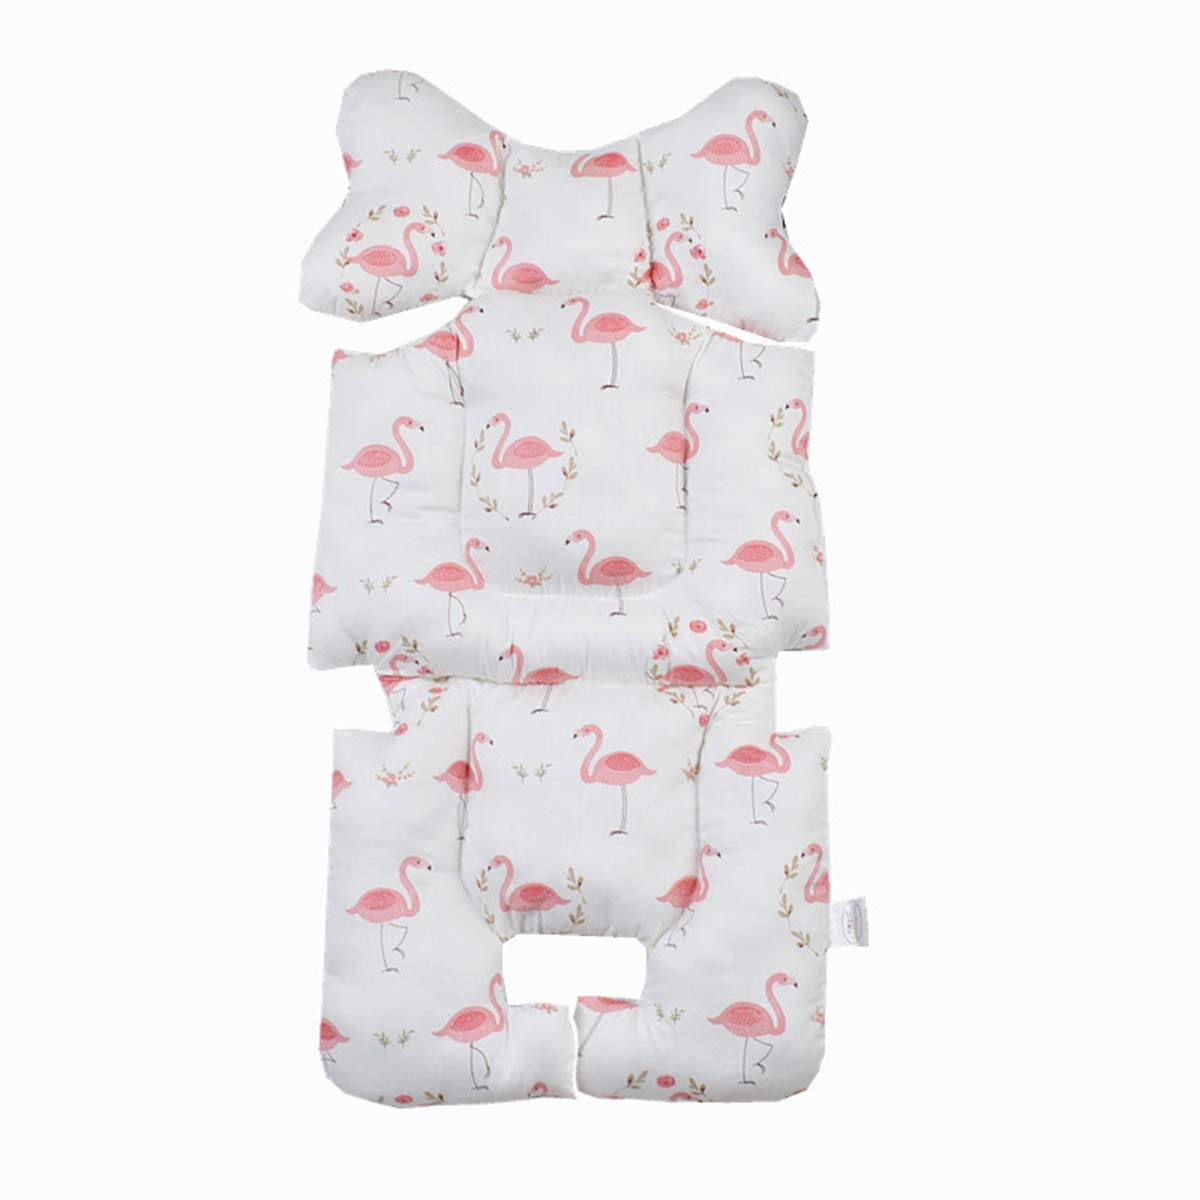 Toddler Cotton Car Seat Head /& Body Supports Infant Seat Pad Carseat Neck Support Cushion Pink Flamingos Baby Seat Liner Best Gift for Baby Kids Baby Car Seat Insert